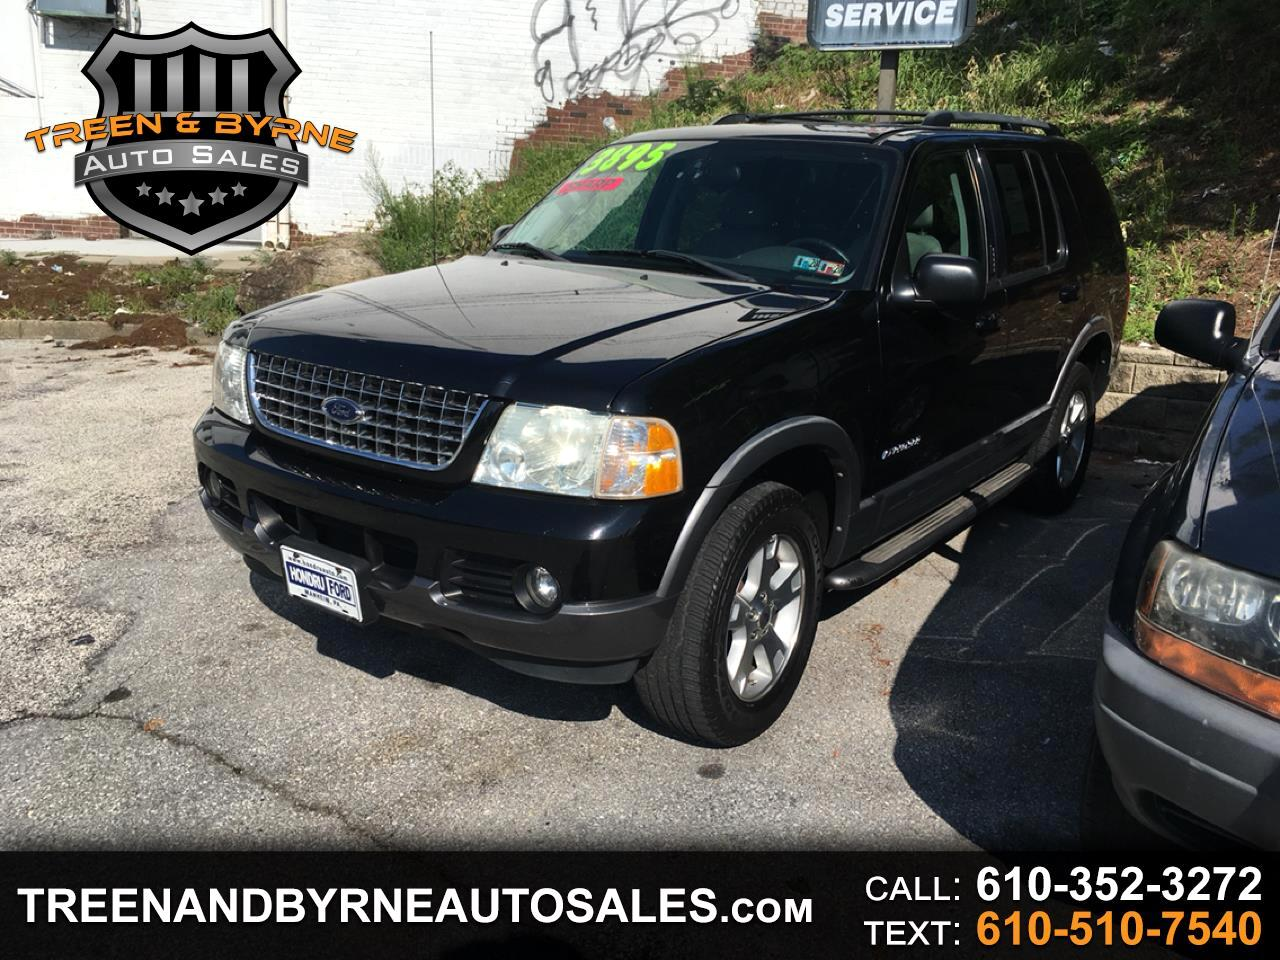 2004 Ford Explorer XLT 4.0L 4WD